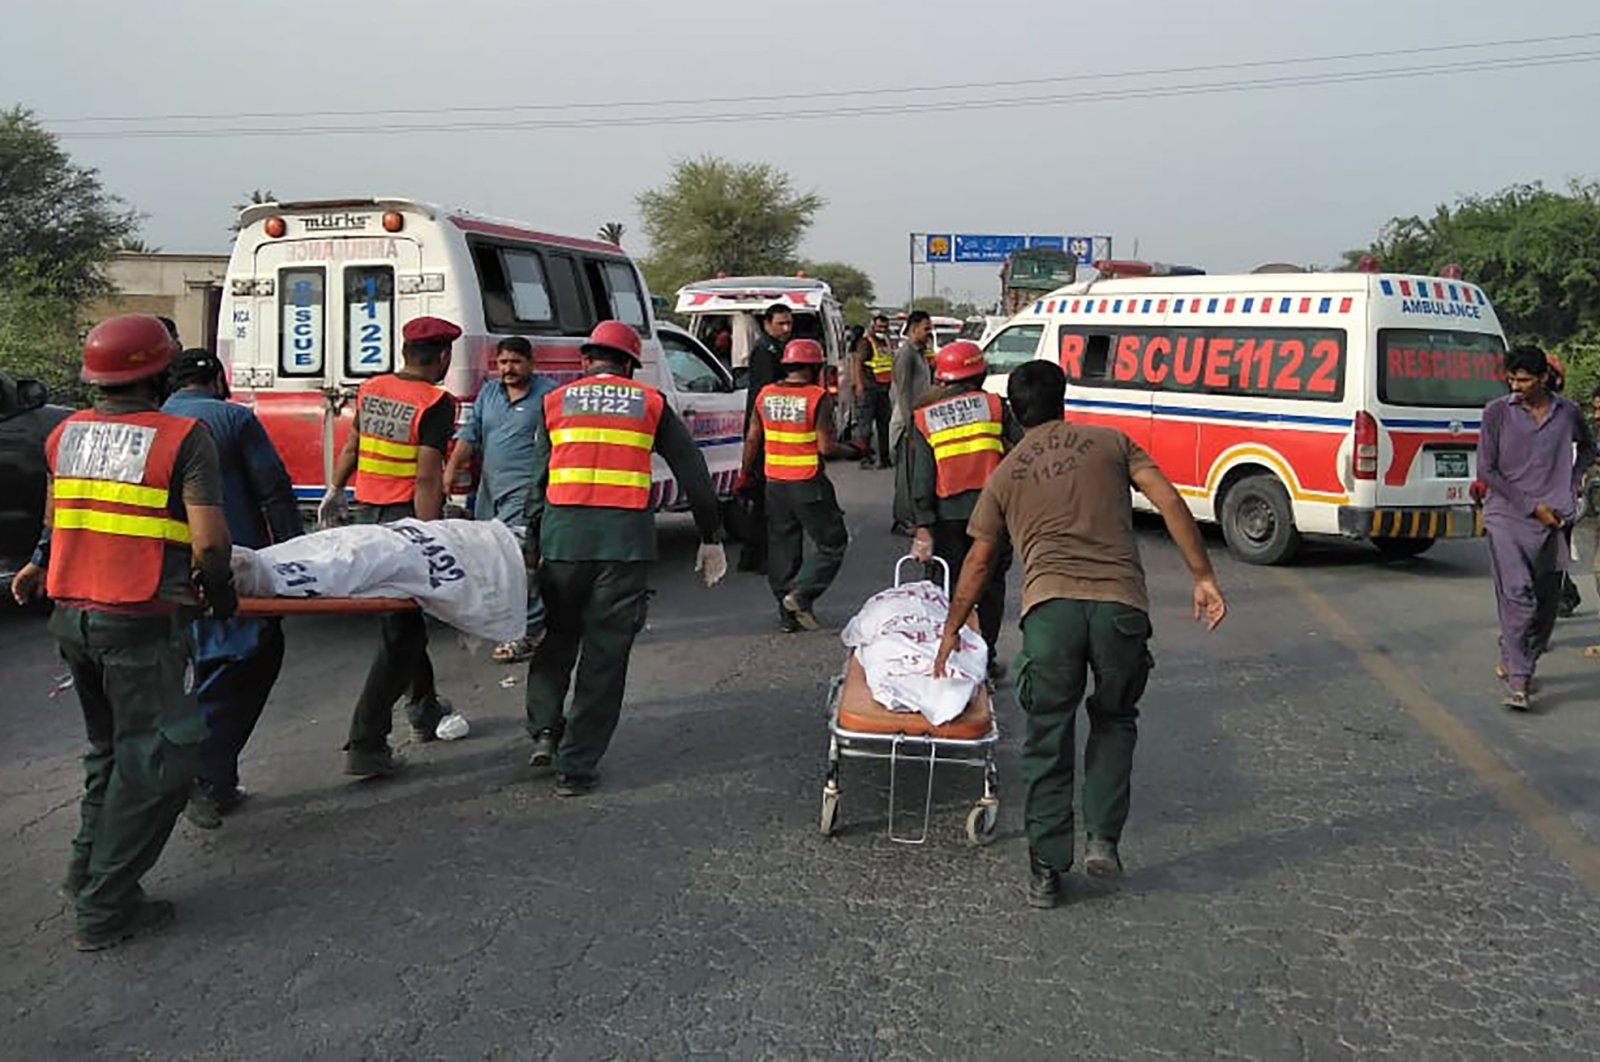 Rescue workers remove bodies at the site of a deadly bus accident near Dera Ghazi Khan, Pakistan, Monday, July 19, 2021. (Emergency Service Rescue 1122 via AP)